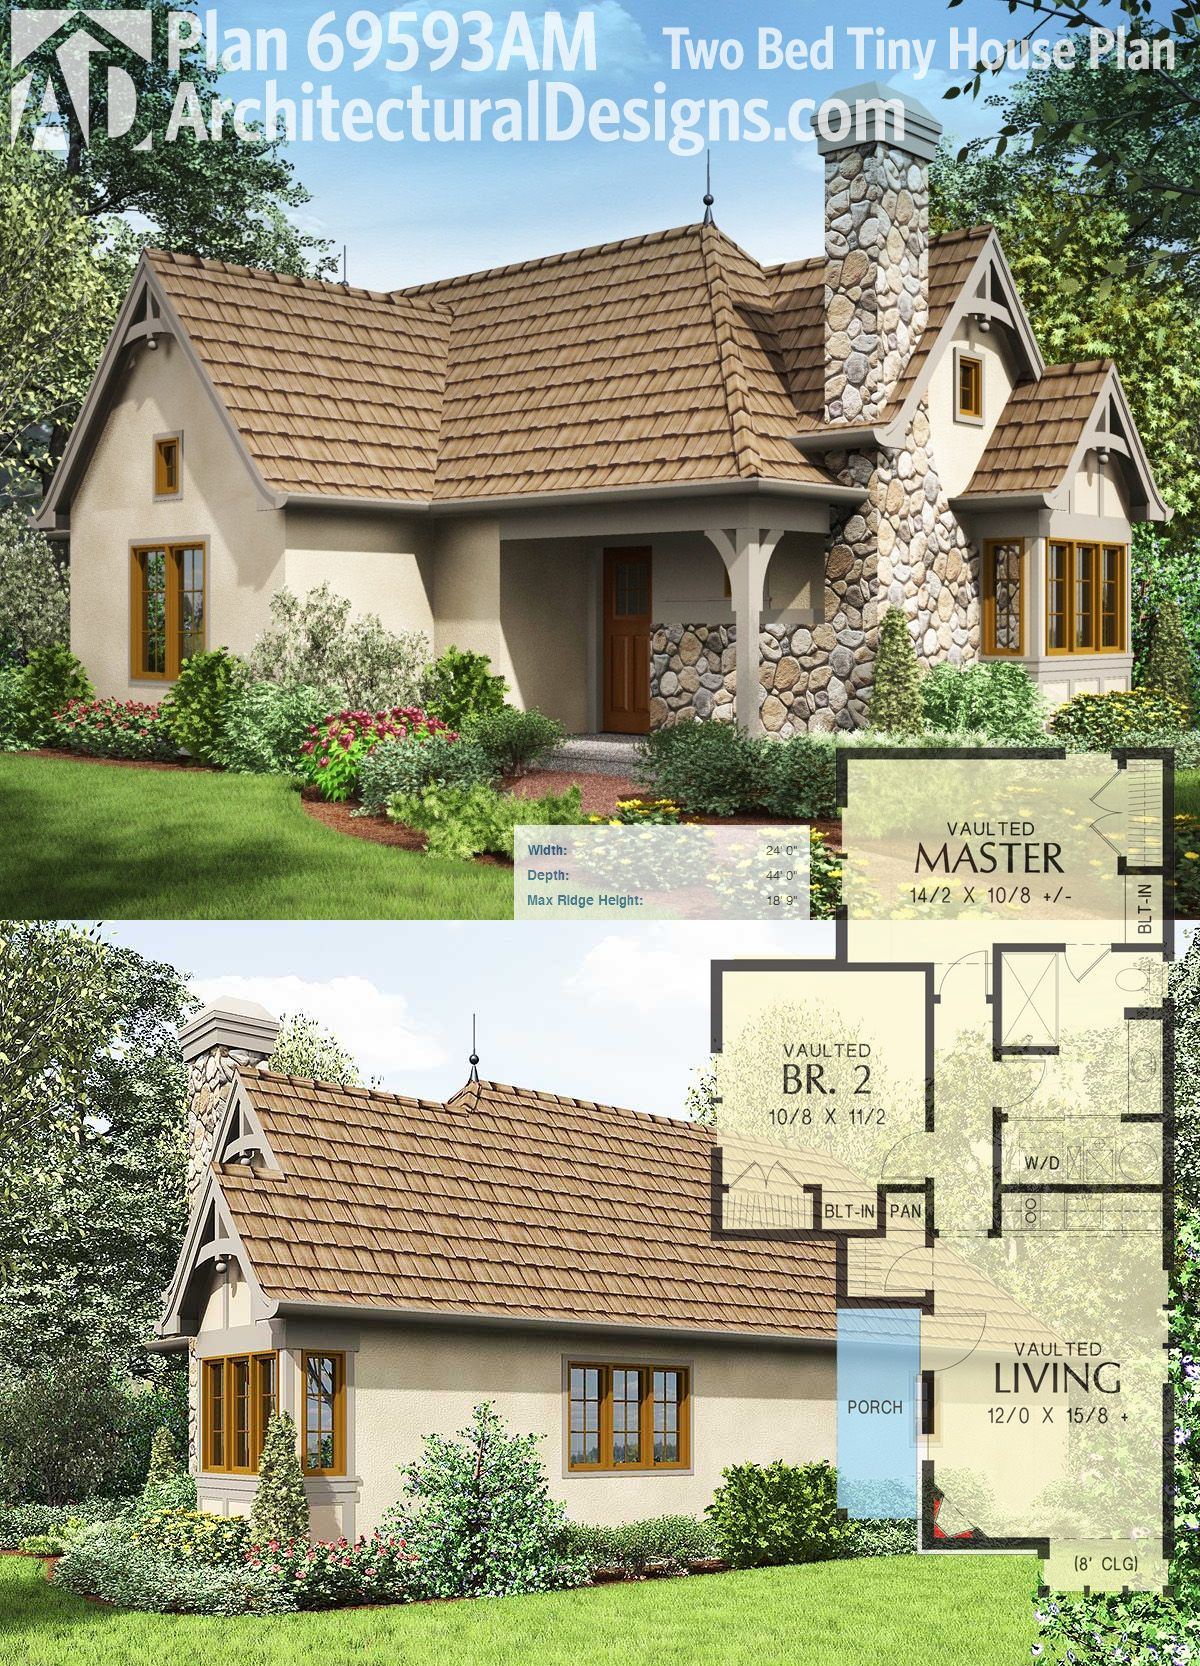 Architectural Designs Tiny House Plan 69593AM Gives You 2 Bedrooms And An  Open Living Area (